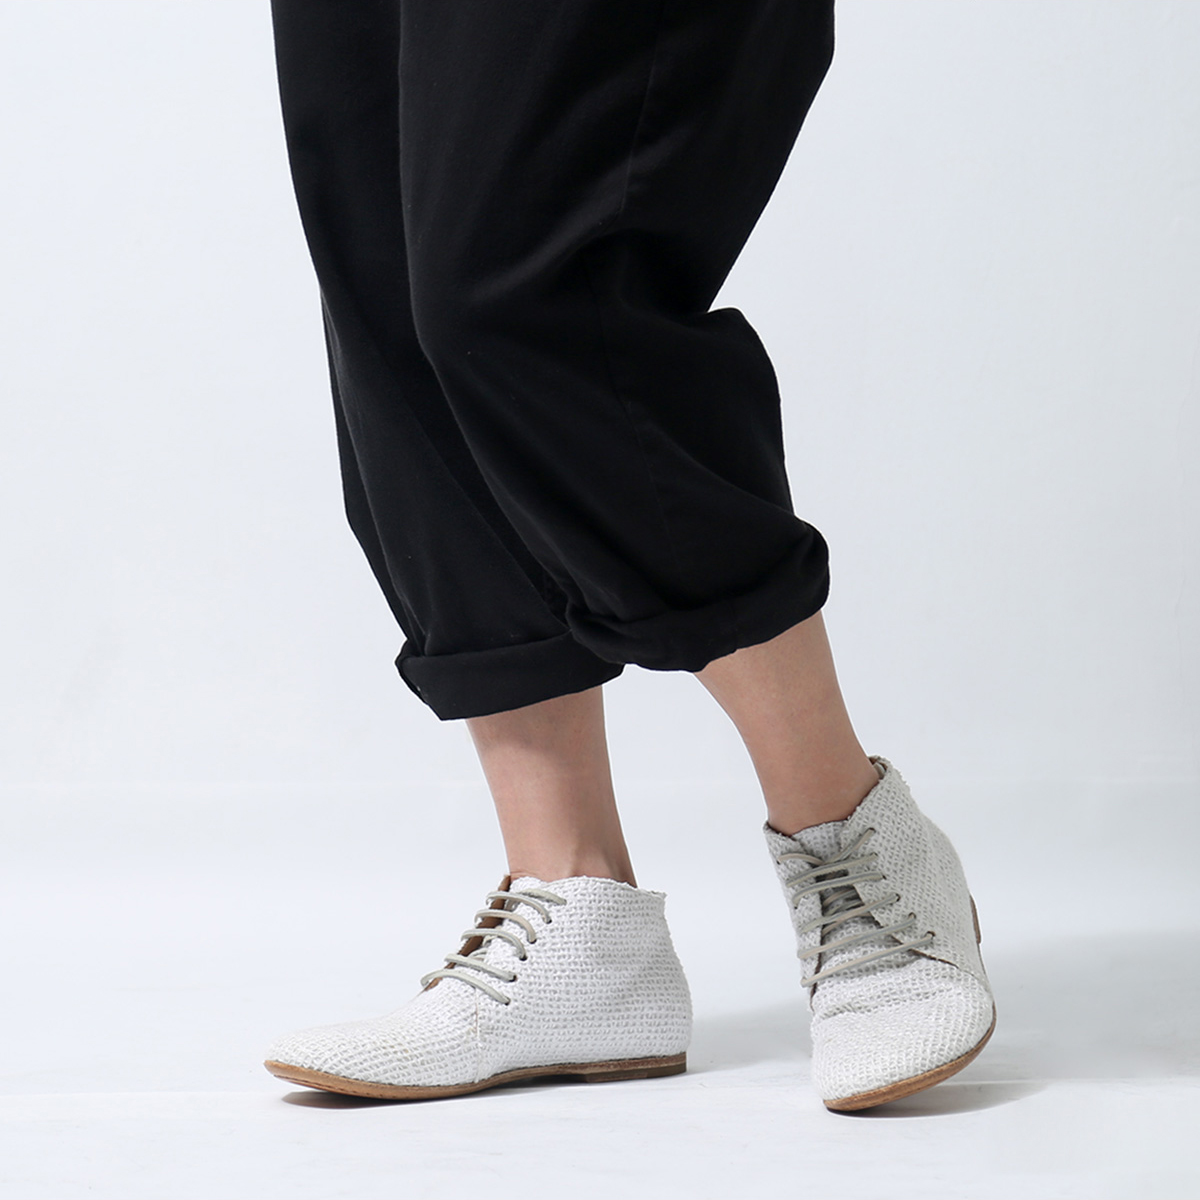 RUNDHOLZ LACEUP MIDDLE SHOES 146 5207_OFF WHITE